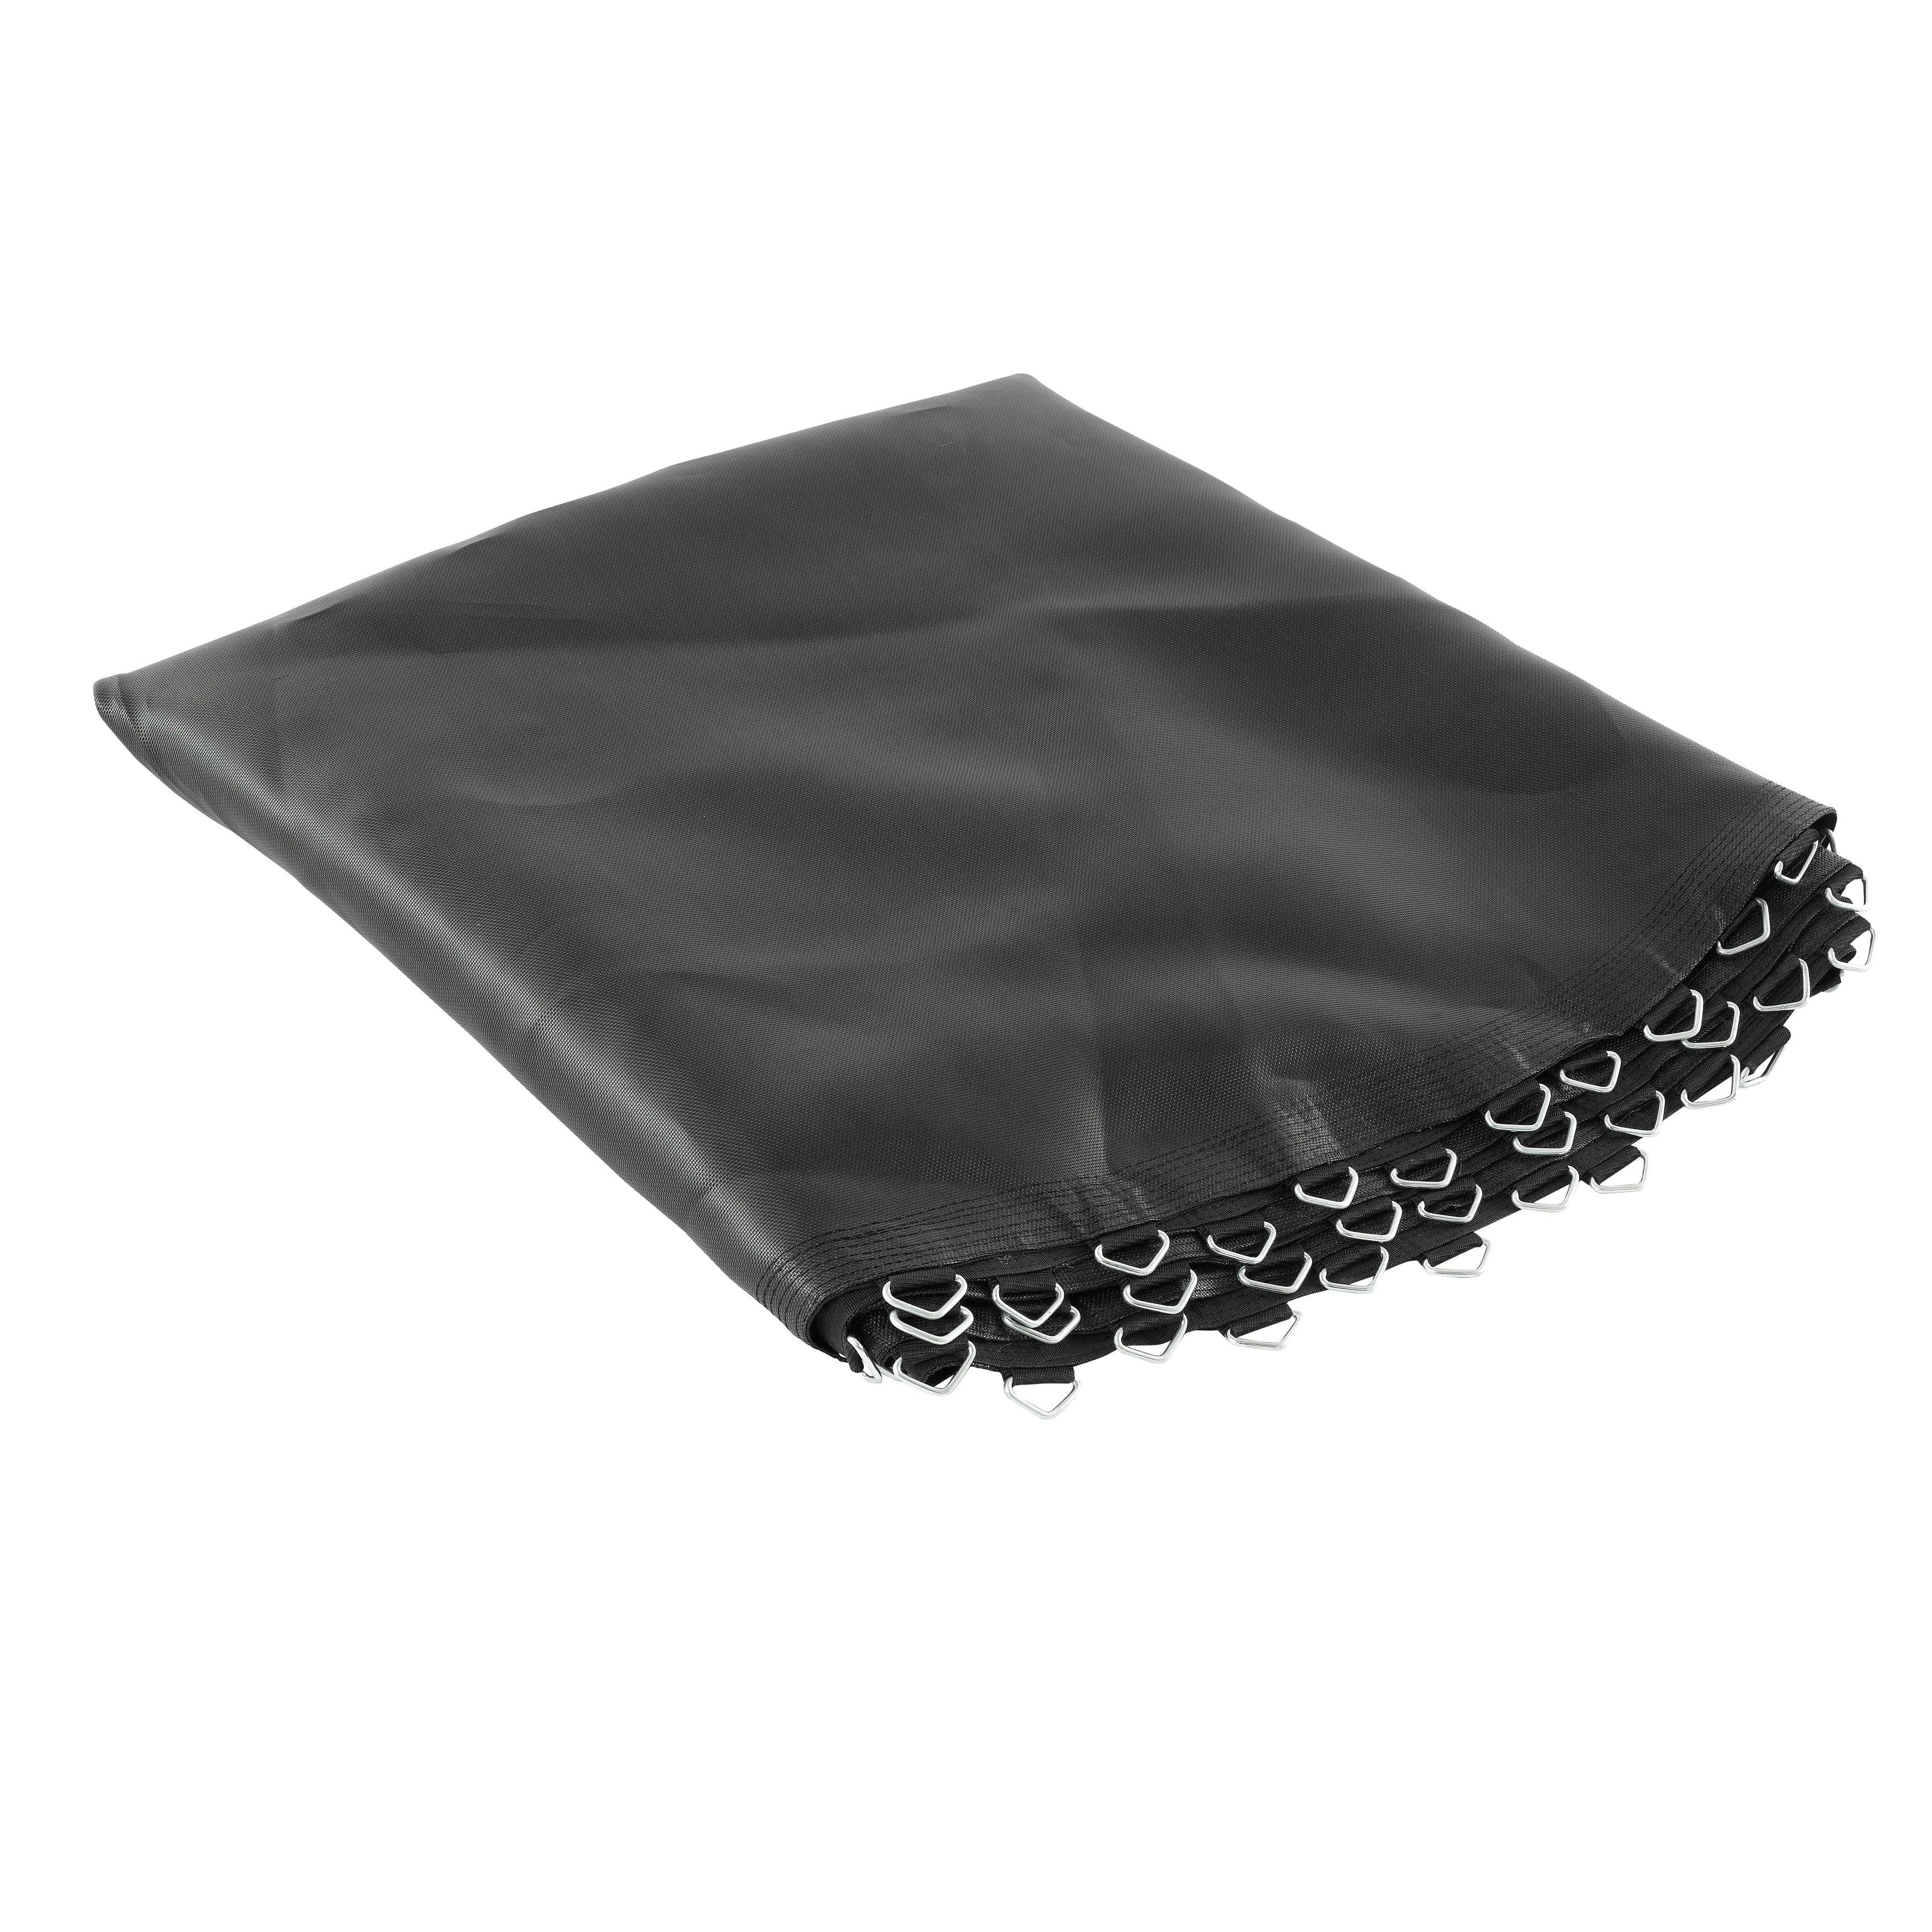 Zupapa Jumping Mat Replacement for 14 Ft Round Trampoline Frame UV Protection and 8 Stitch Lines More Durable 96 V Rings for 7 Inch Springs